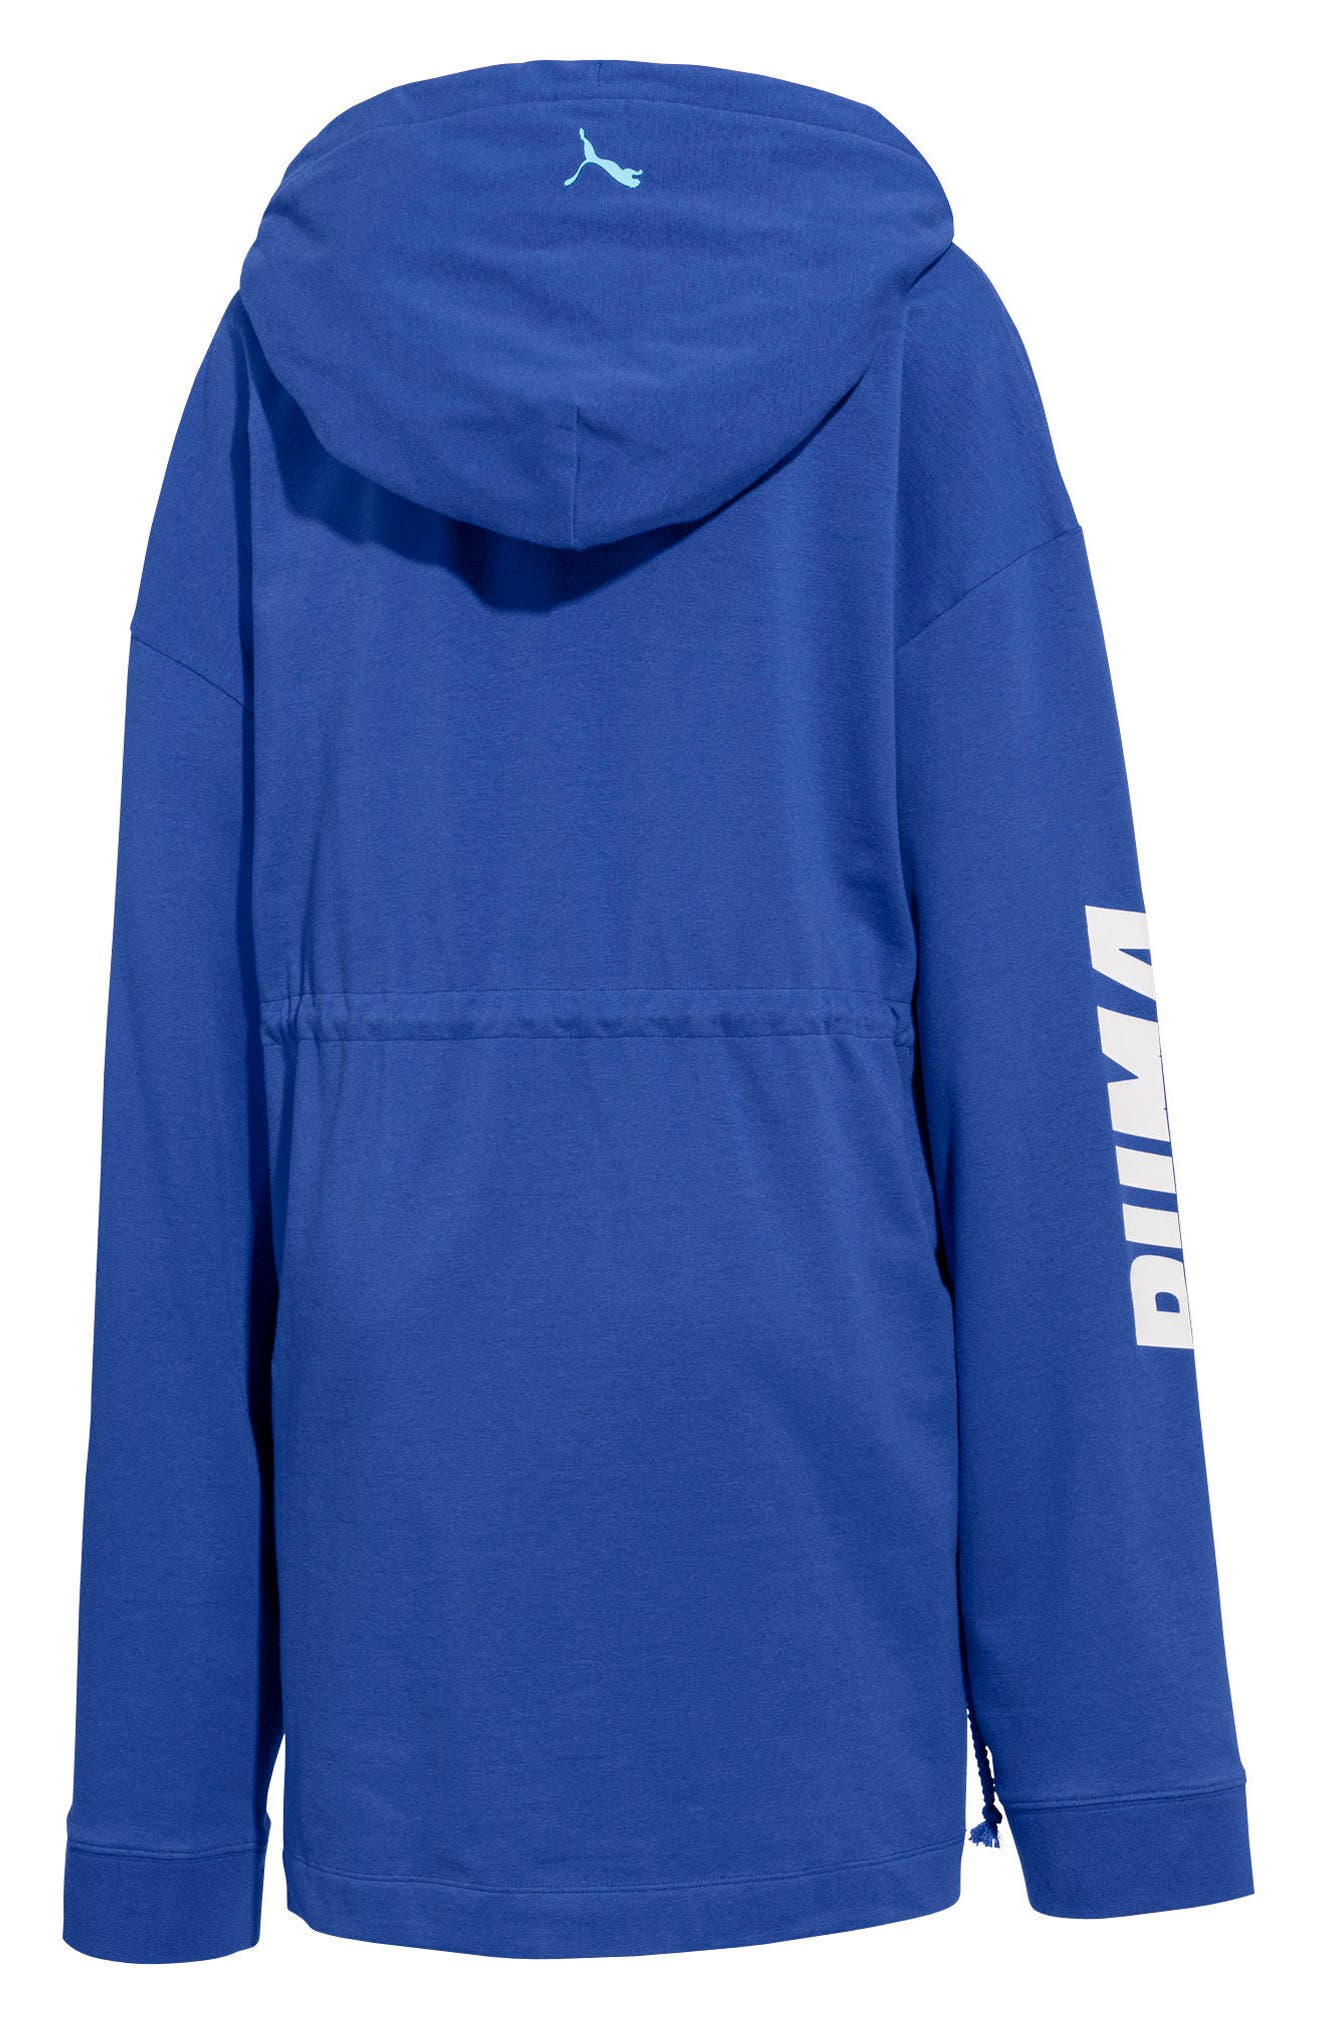 PUMA by Rihanna Gathered Hoodie,                             Alternate thumbnail 2, color,                             Dazzling Blue